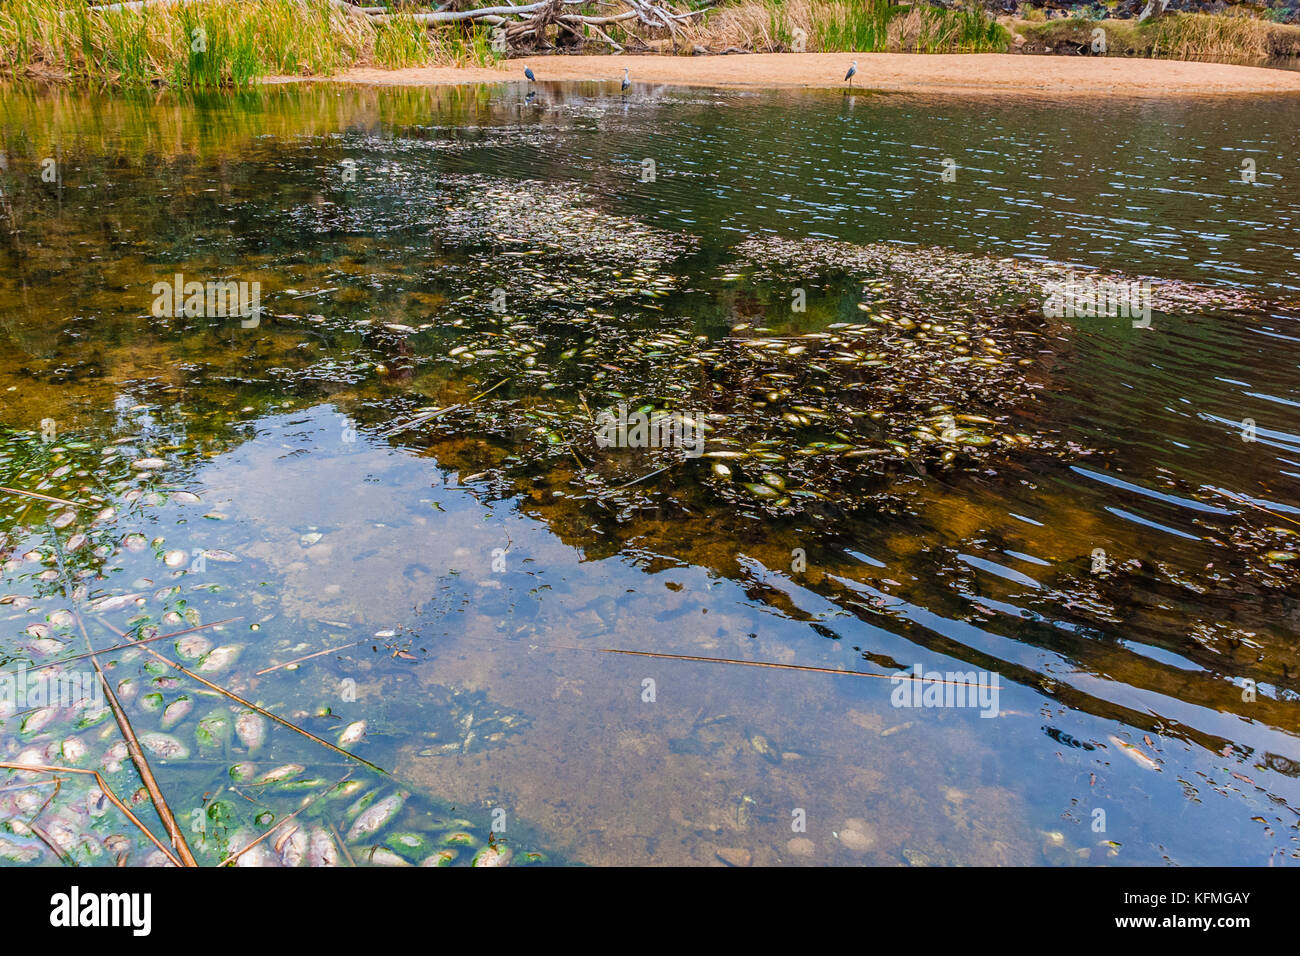 Fish pestilence in the Ellery Creek Big Hole, MacDonnell National Park, Australia - Stock Image